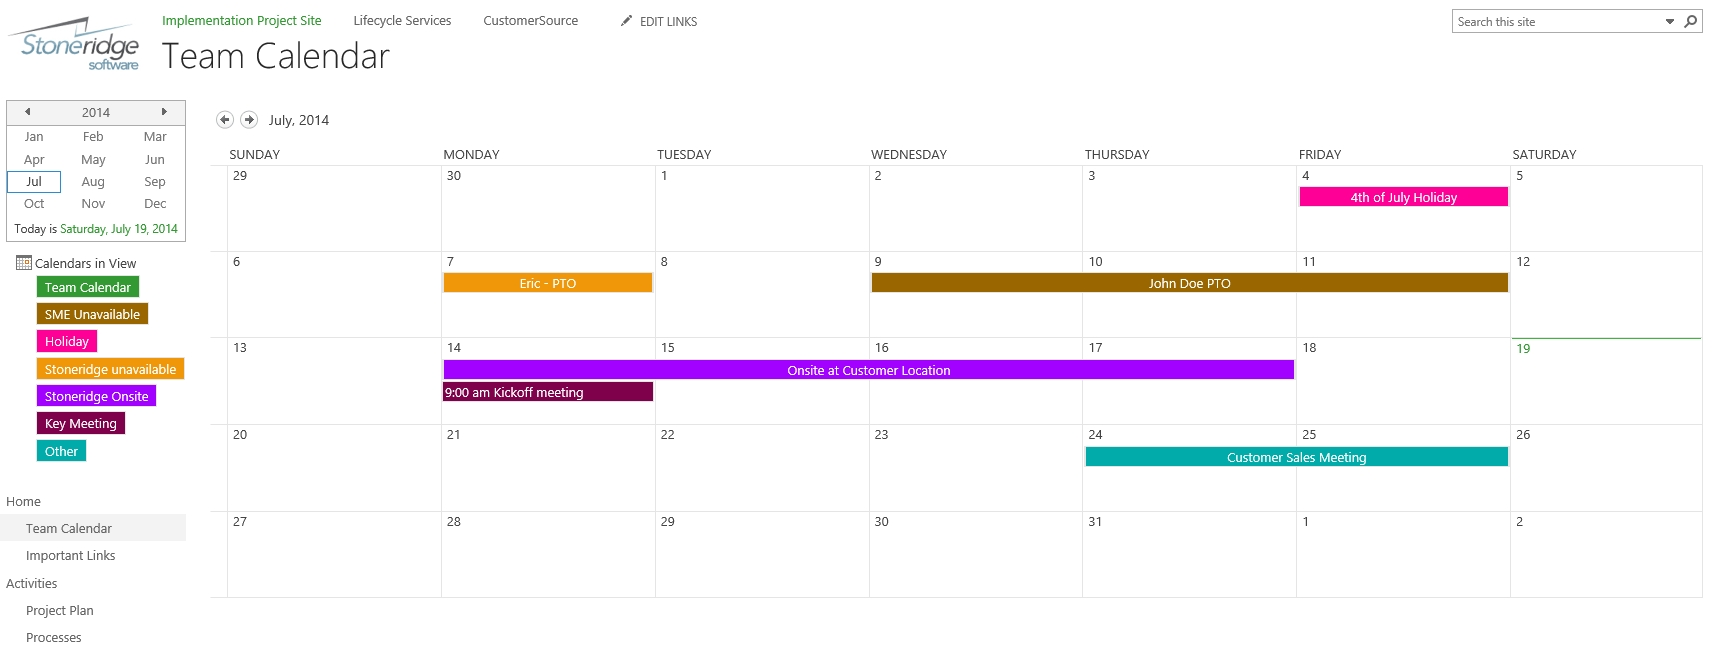 Creating A Color Coded Calendar In Sharepoint Online | Stoneridge in Sharepoint 2013 Calendar Overlay Settings